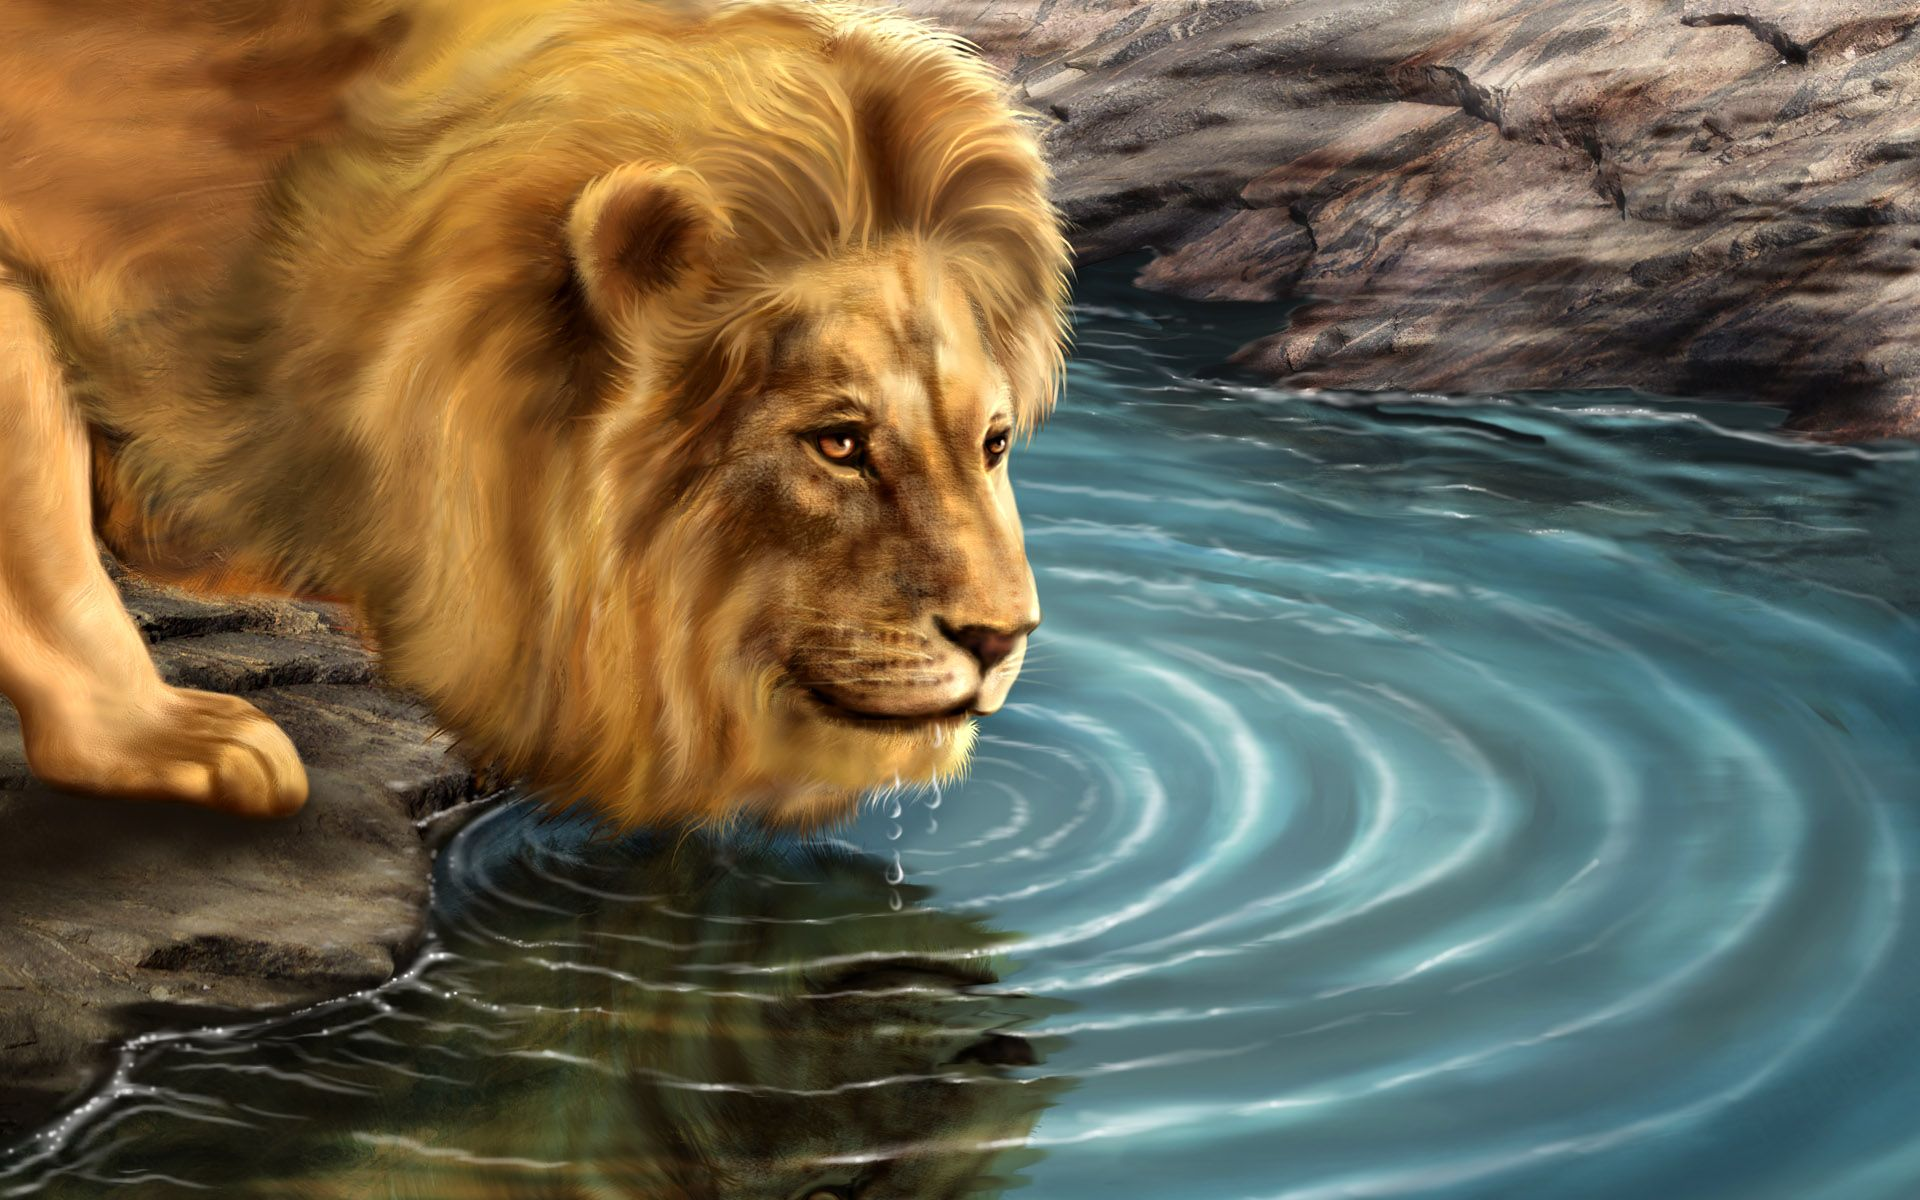 One My Fav Lions Animal Wallpaper Lion Wallpaper Lion Facts